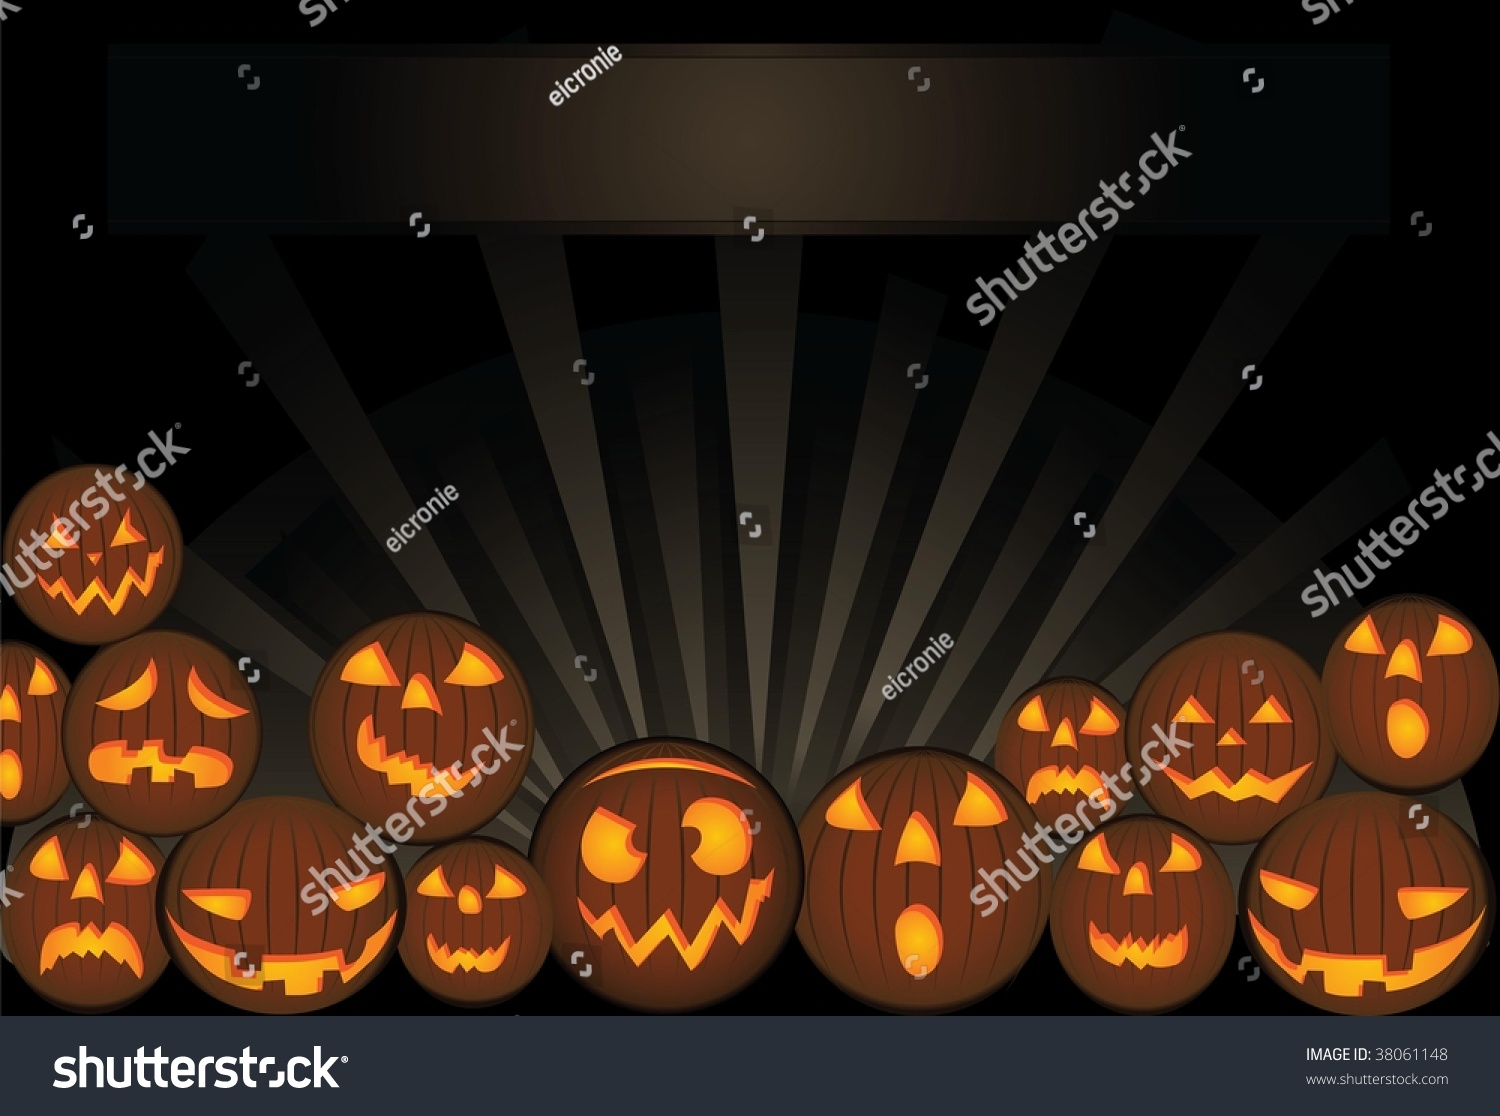 Funny Scary Pumpkins Halloween Card Template Stock Vector 38061148 ...